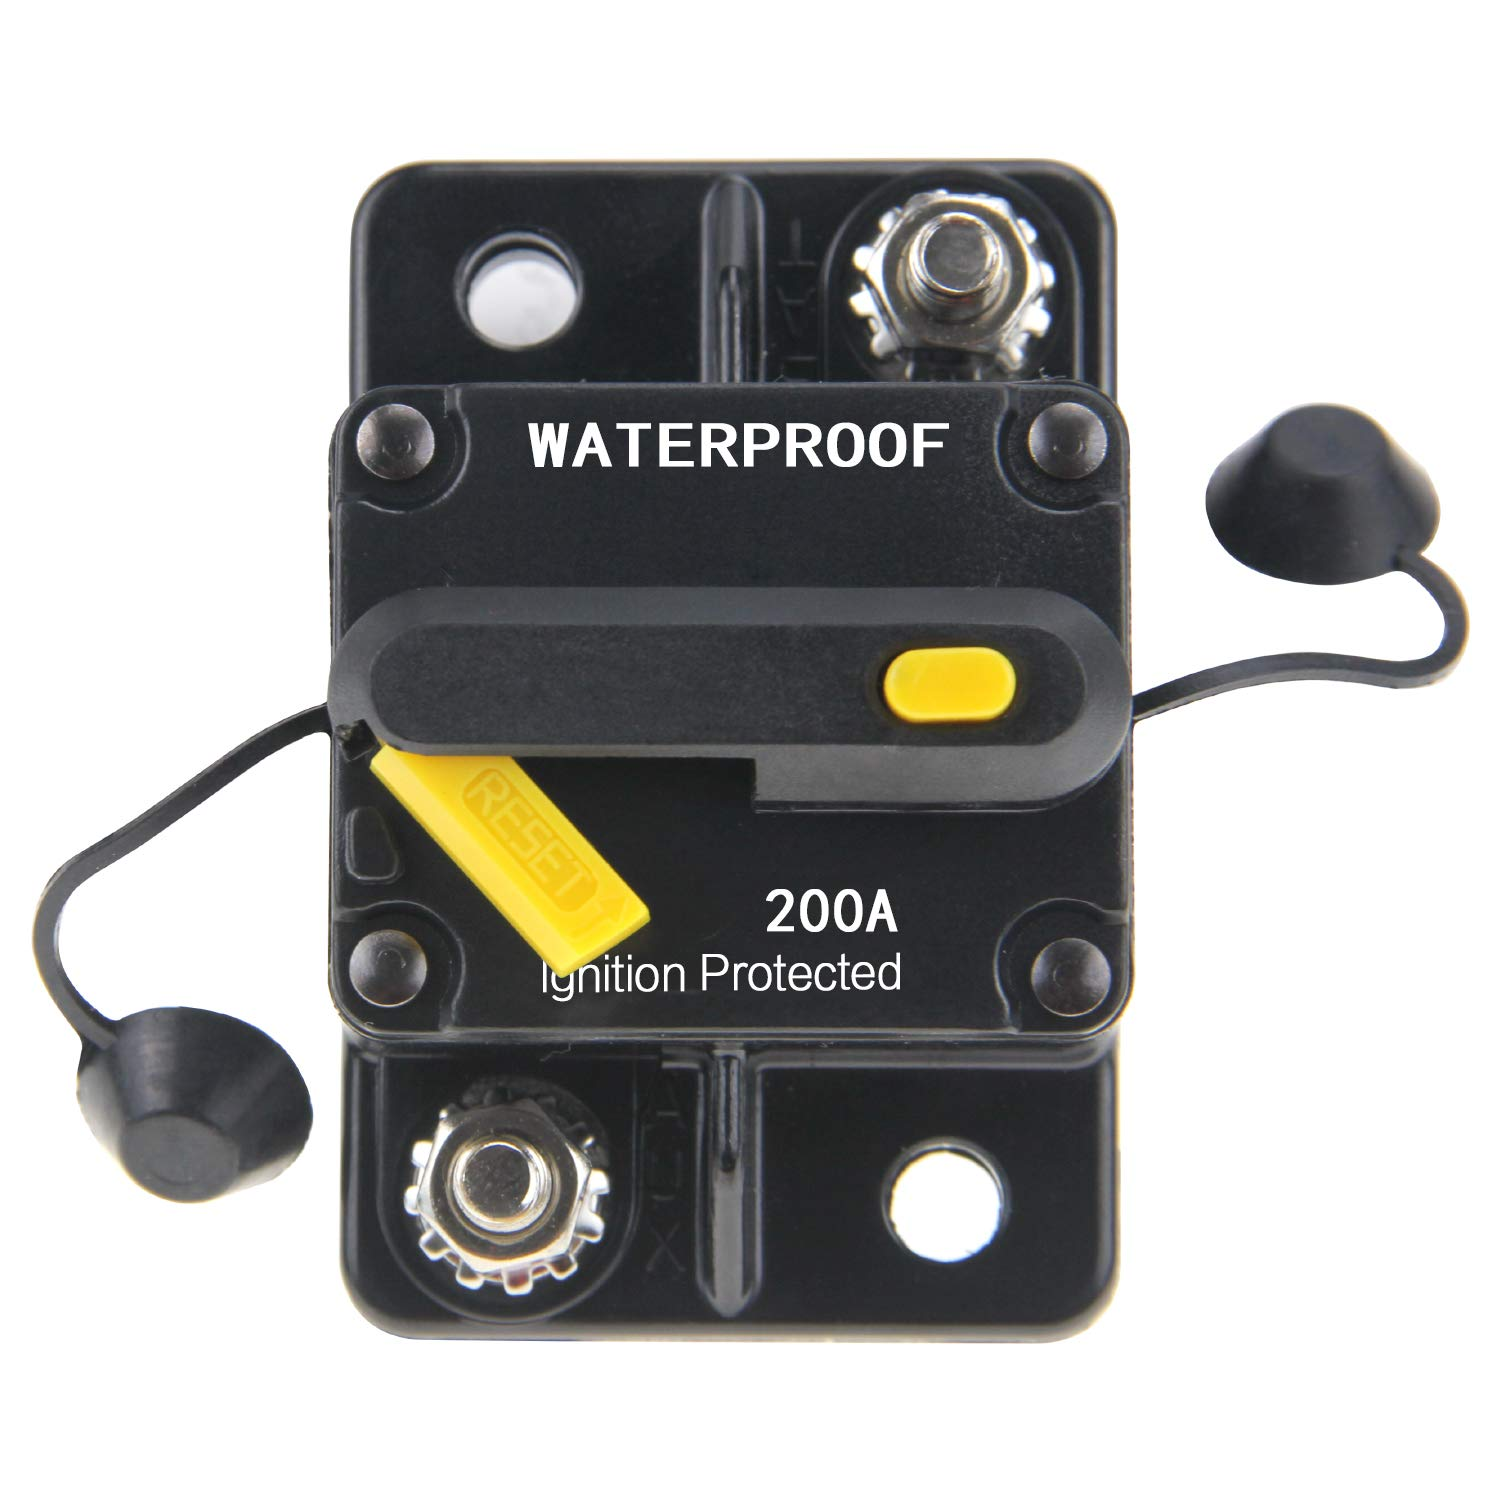 ZOOKOTO 12V-42VDC Waterproof 50A-300A Circuit Breaker with Manual Reset Inline Fuse Inverter Fuse holder for Marine Trolling Motors Boat ATV Manual Power(200A)